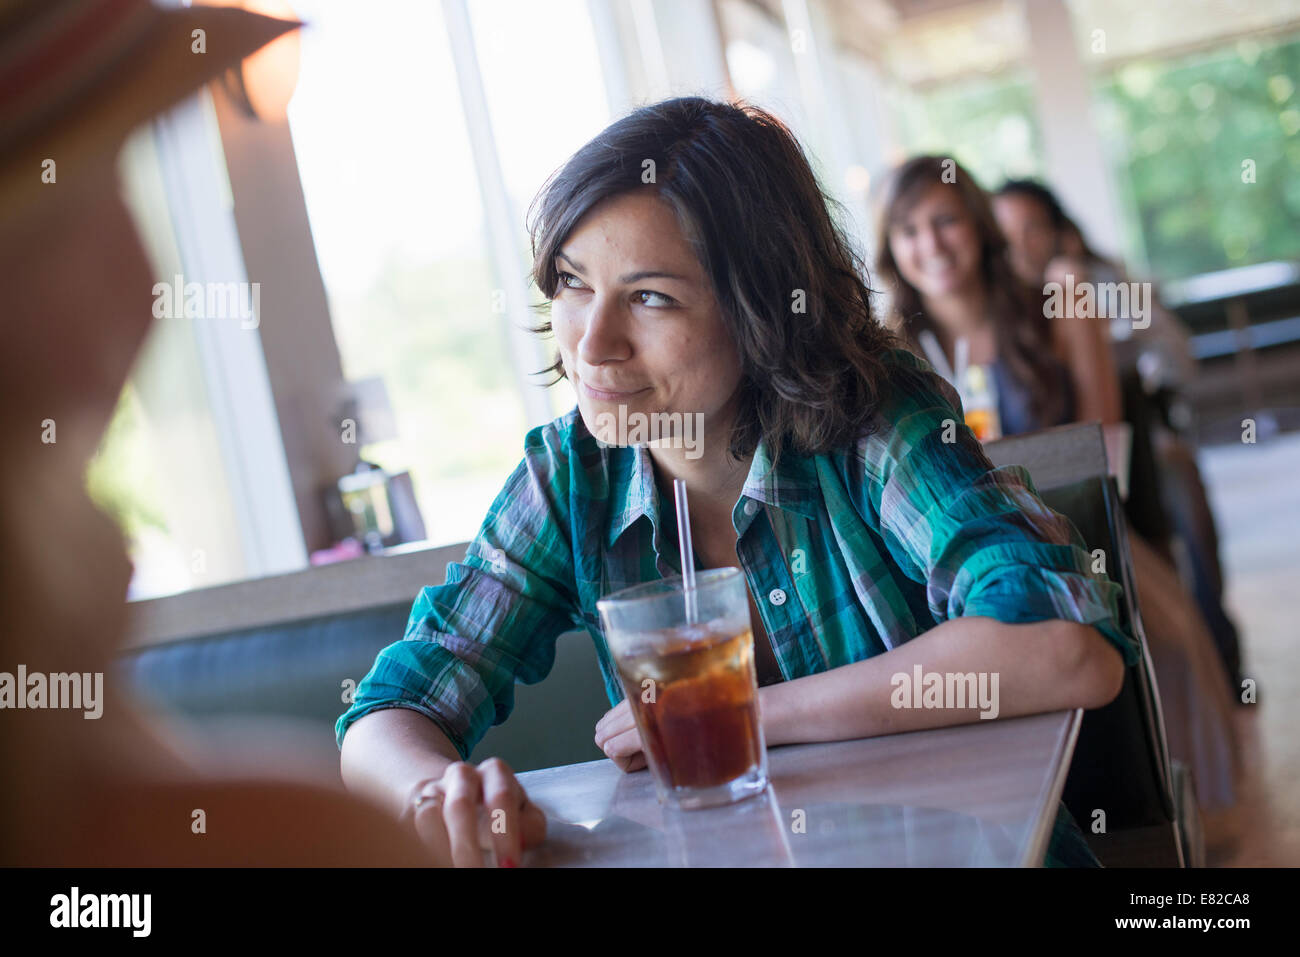 A woman seated at a diner looking out of the window. A long cool drink with a straw. - Stock Image